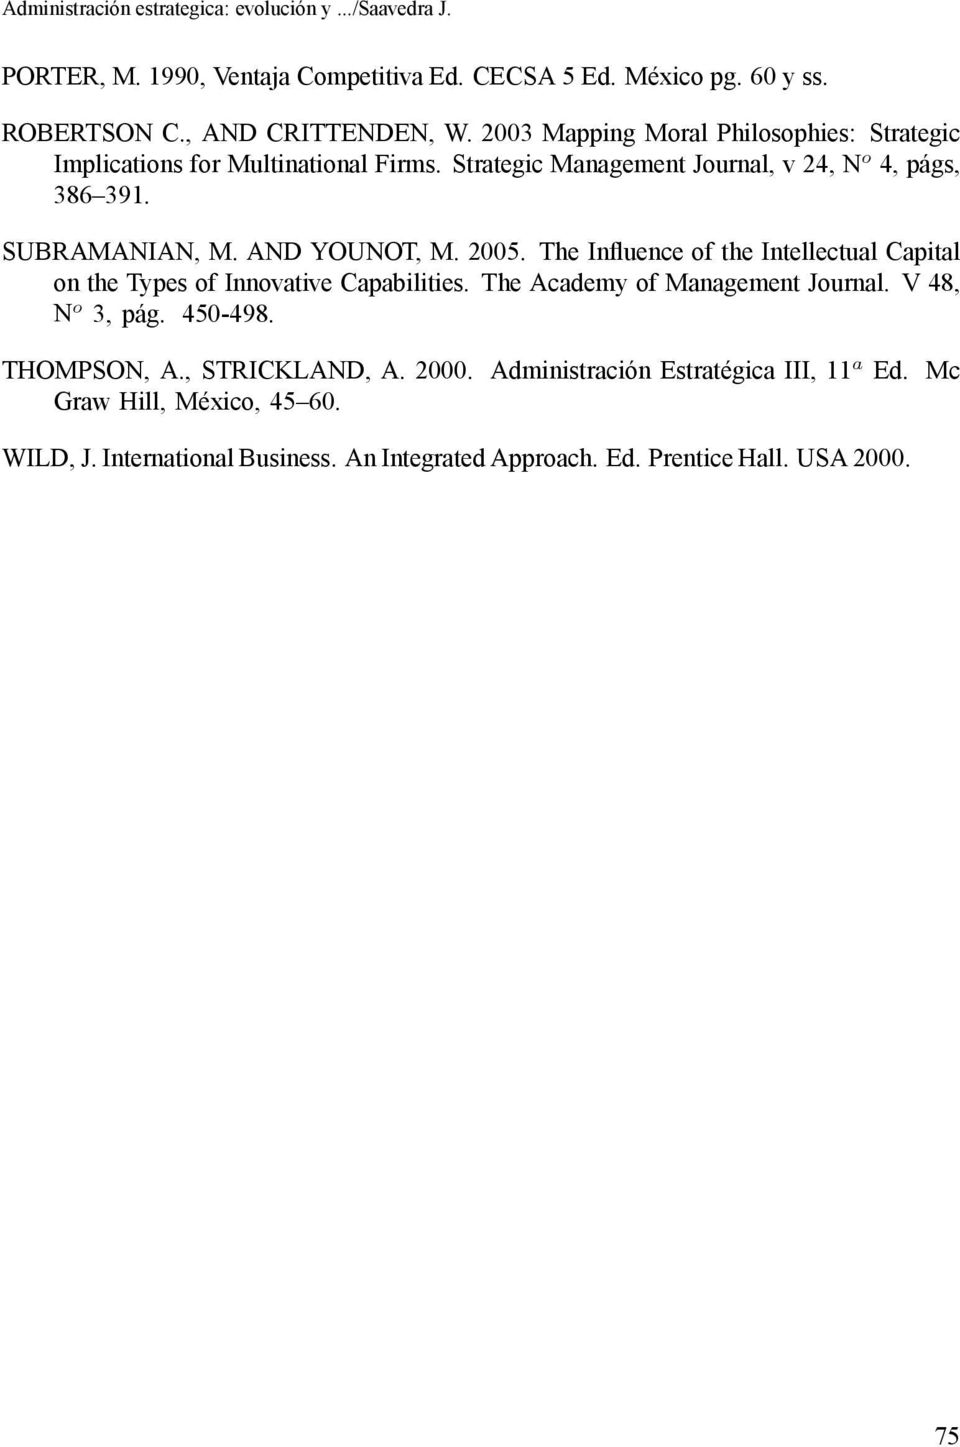 AND YOUNOT, M. 2005. The Influence of the Intellectual Capital on the Types of Innovative Capabilities. The Academy of Management Journal.